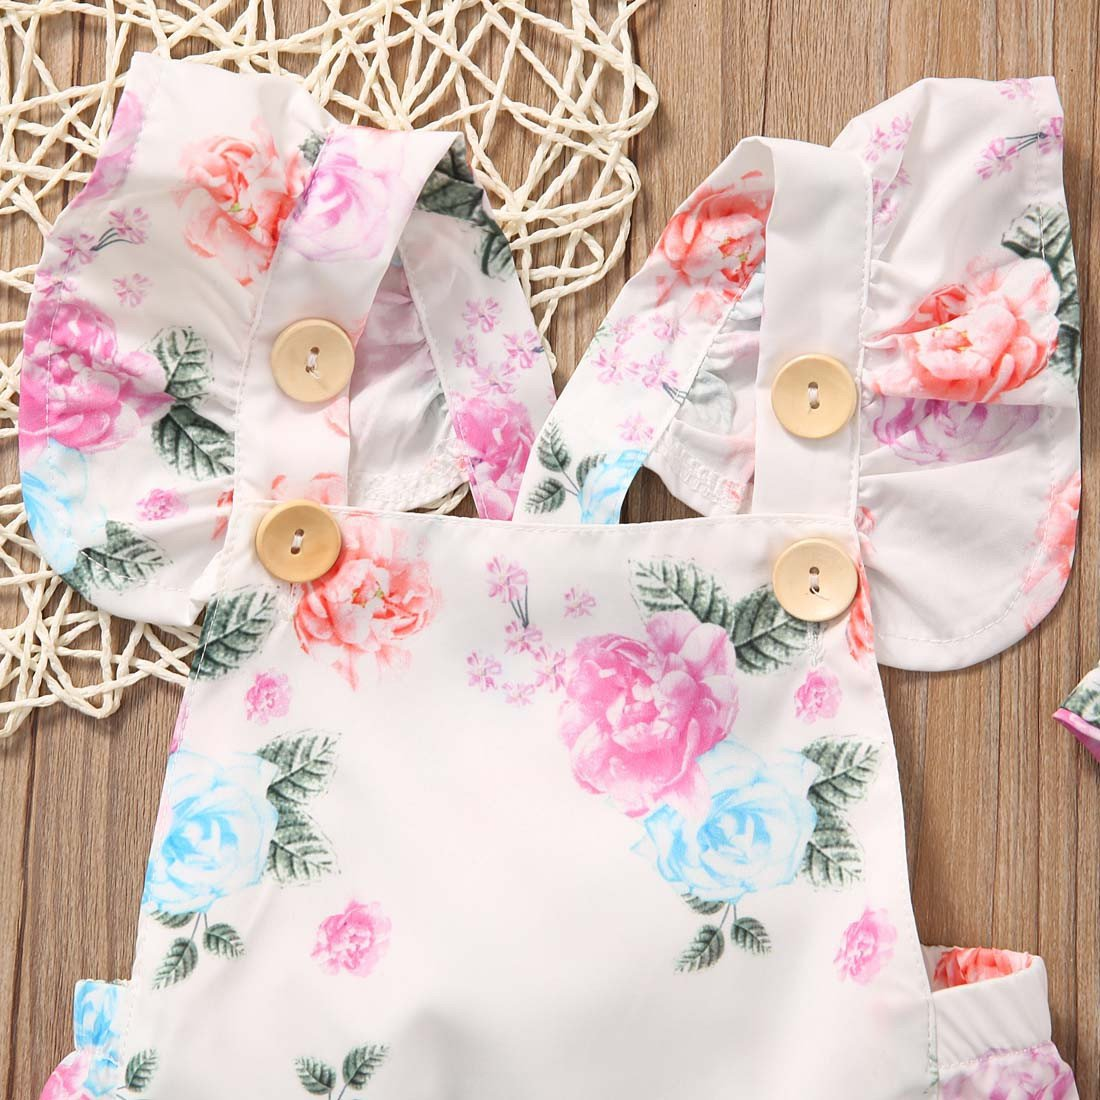 Floral Ruffled Set close up